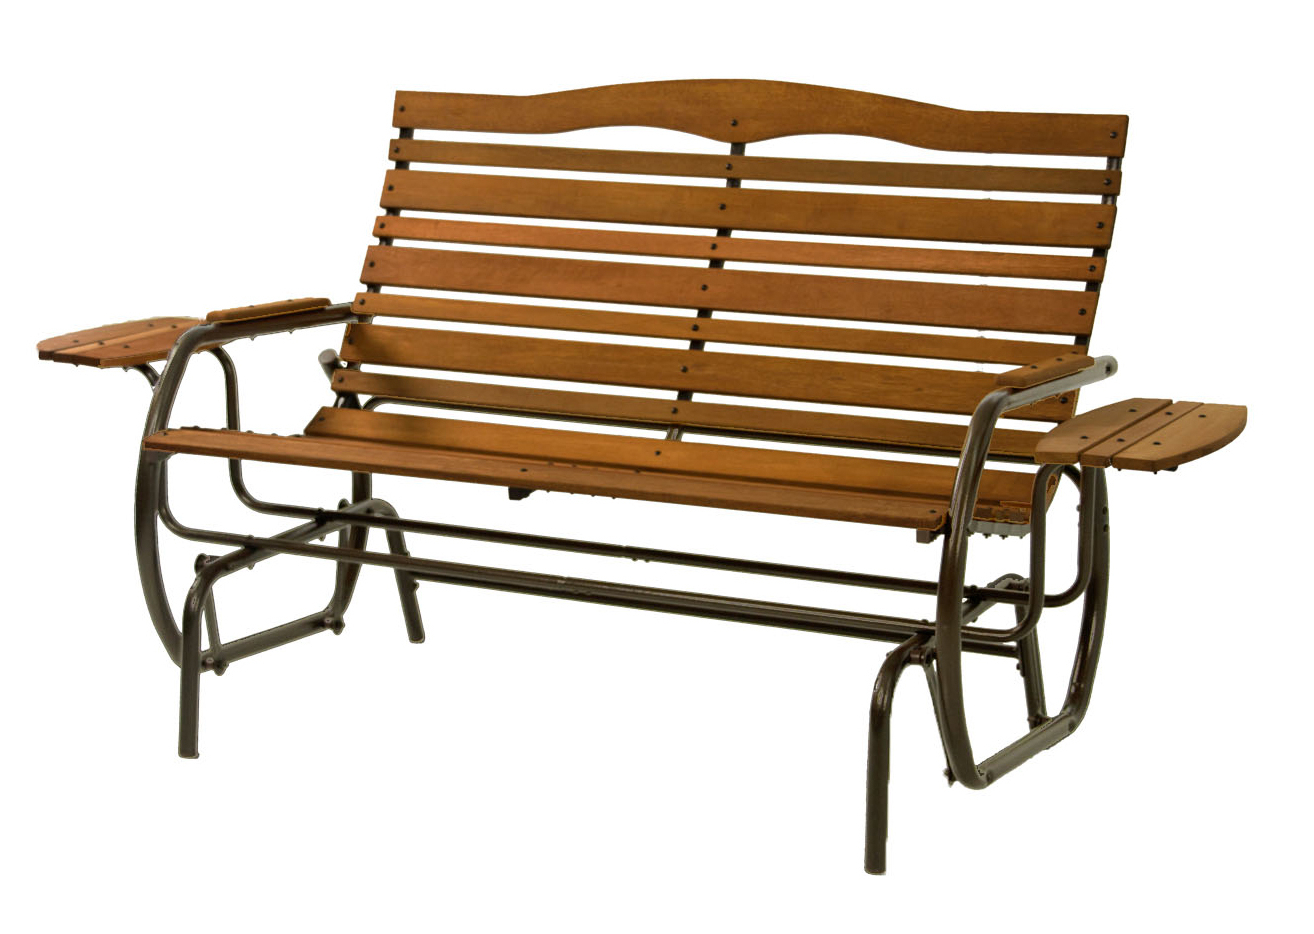 Low Back Glider Benches With Favorite Jack Post Country Garden Glider With Trays In Bronze – Walmart (View 30 of 30)